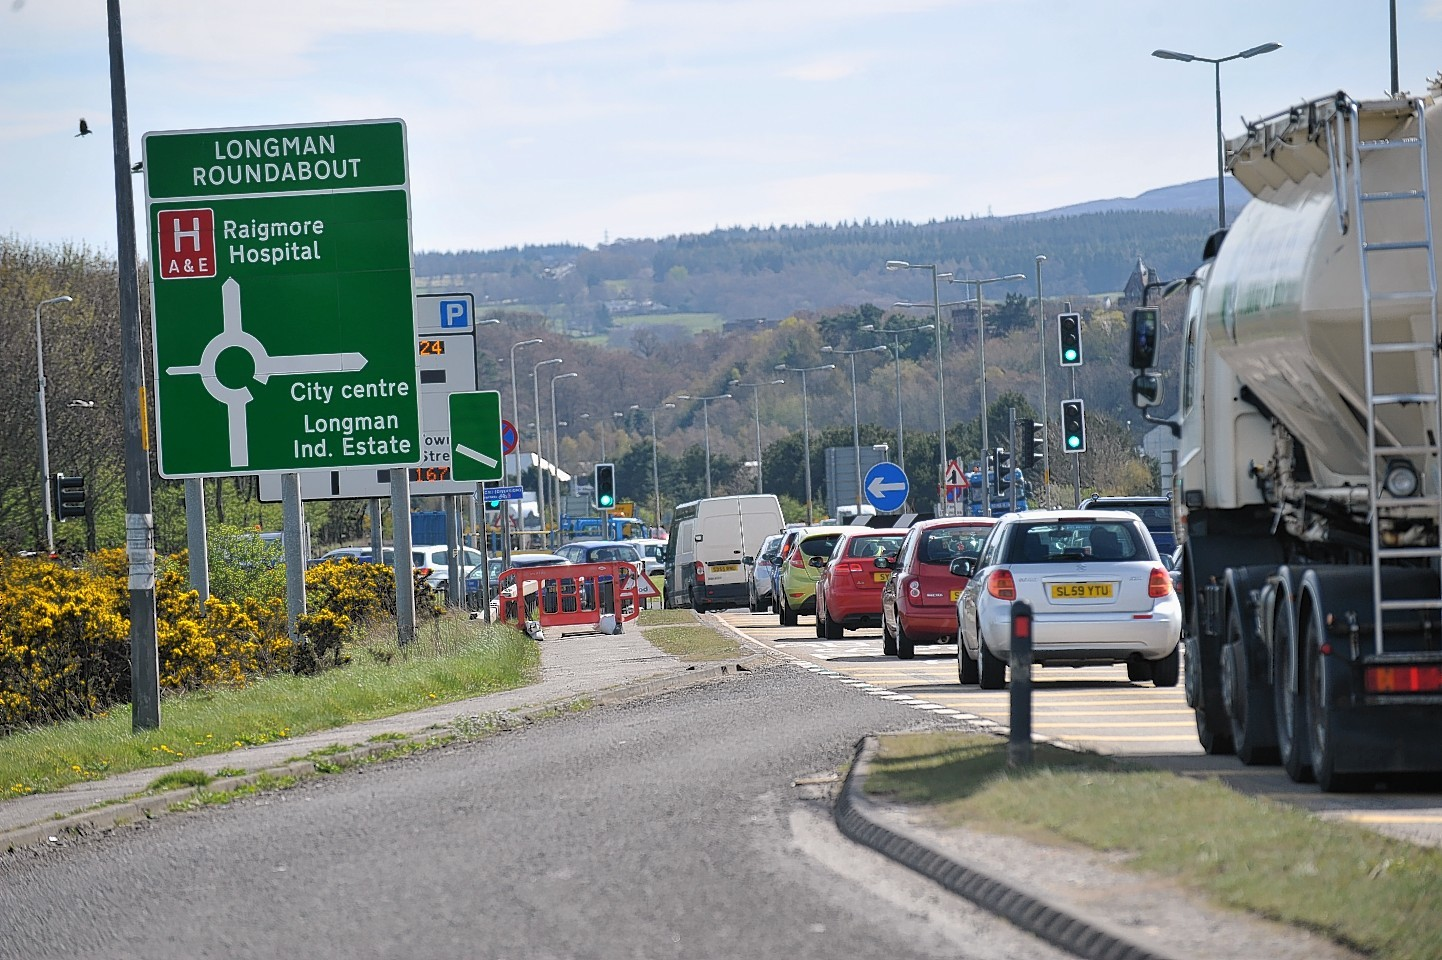 The Longman roundabout outside Inverness.